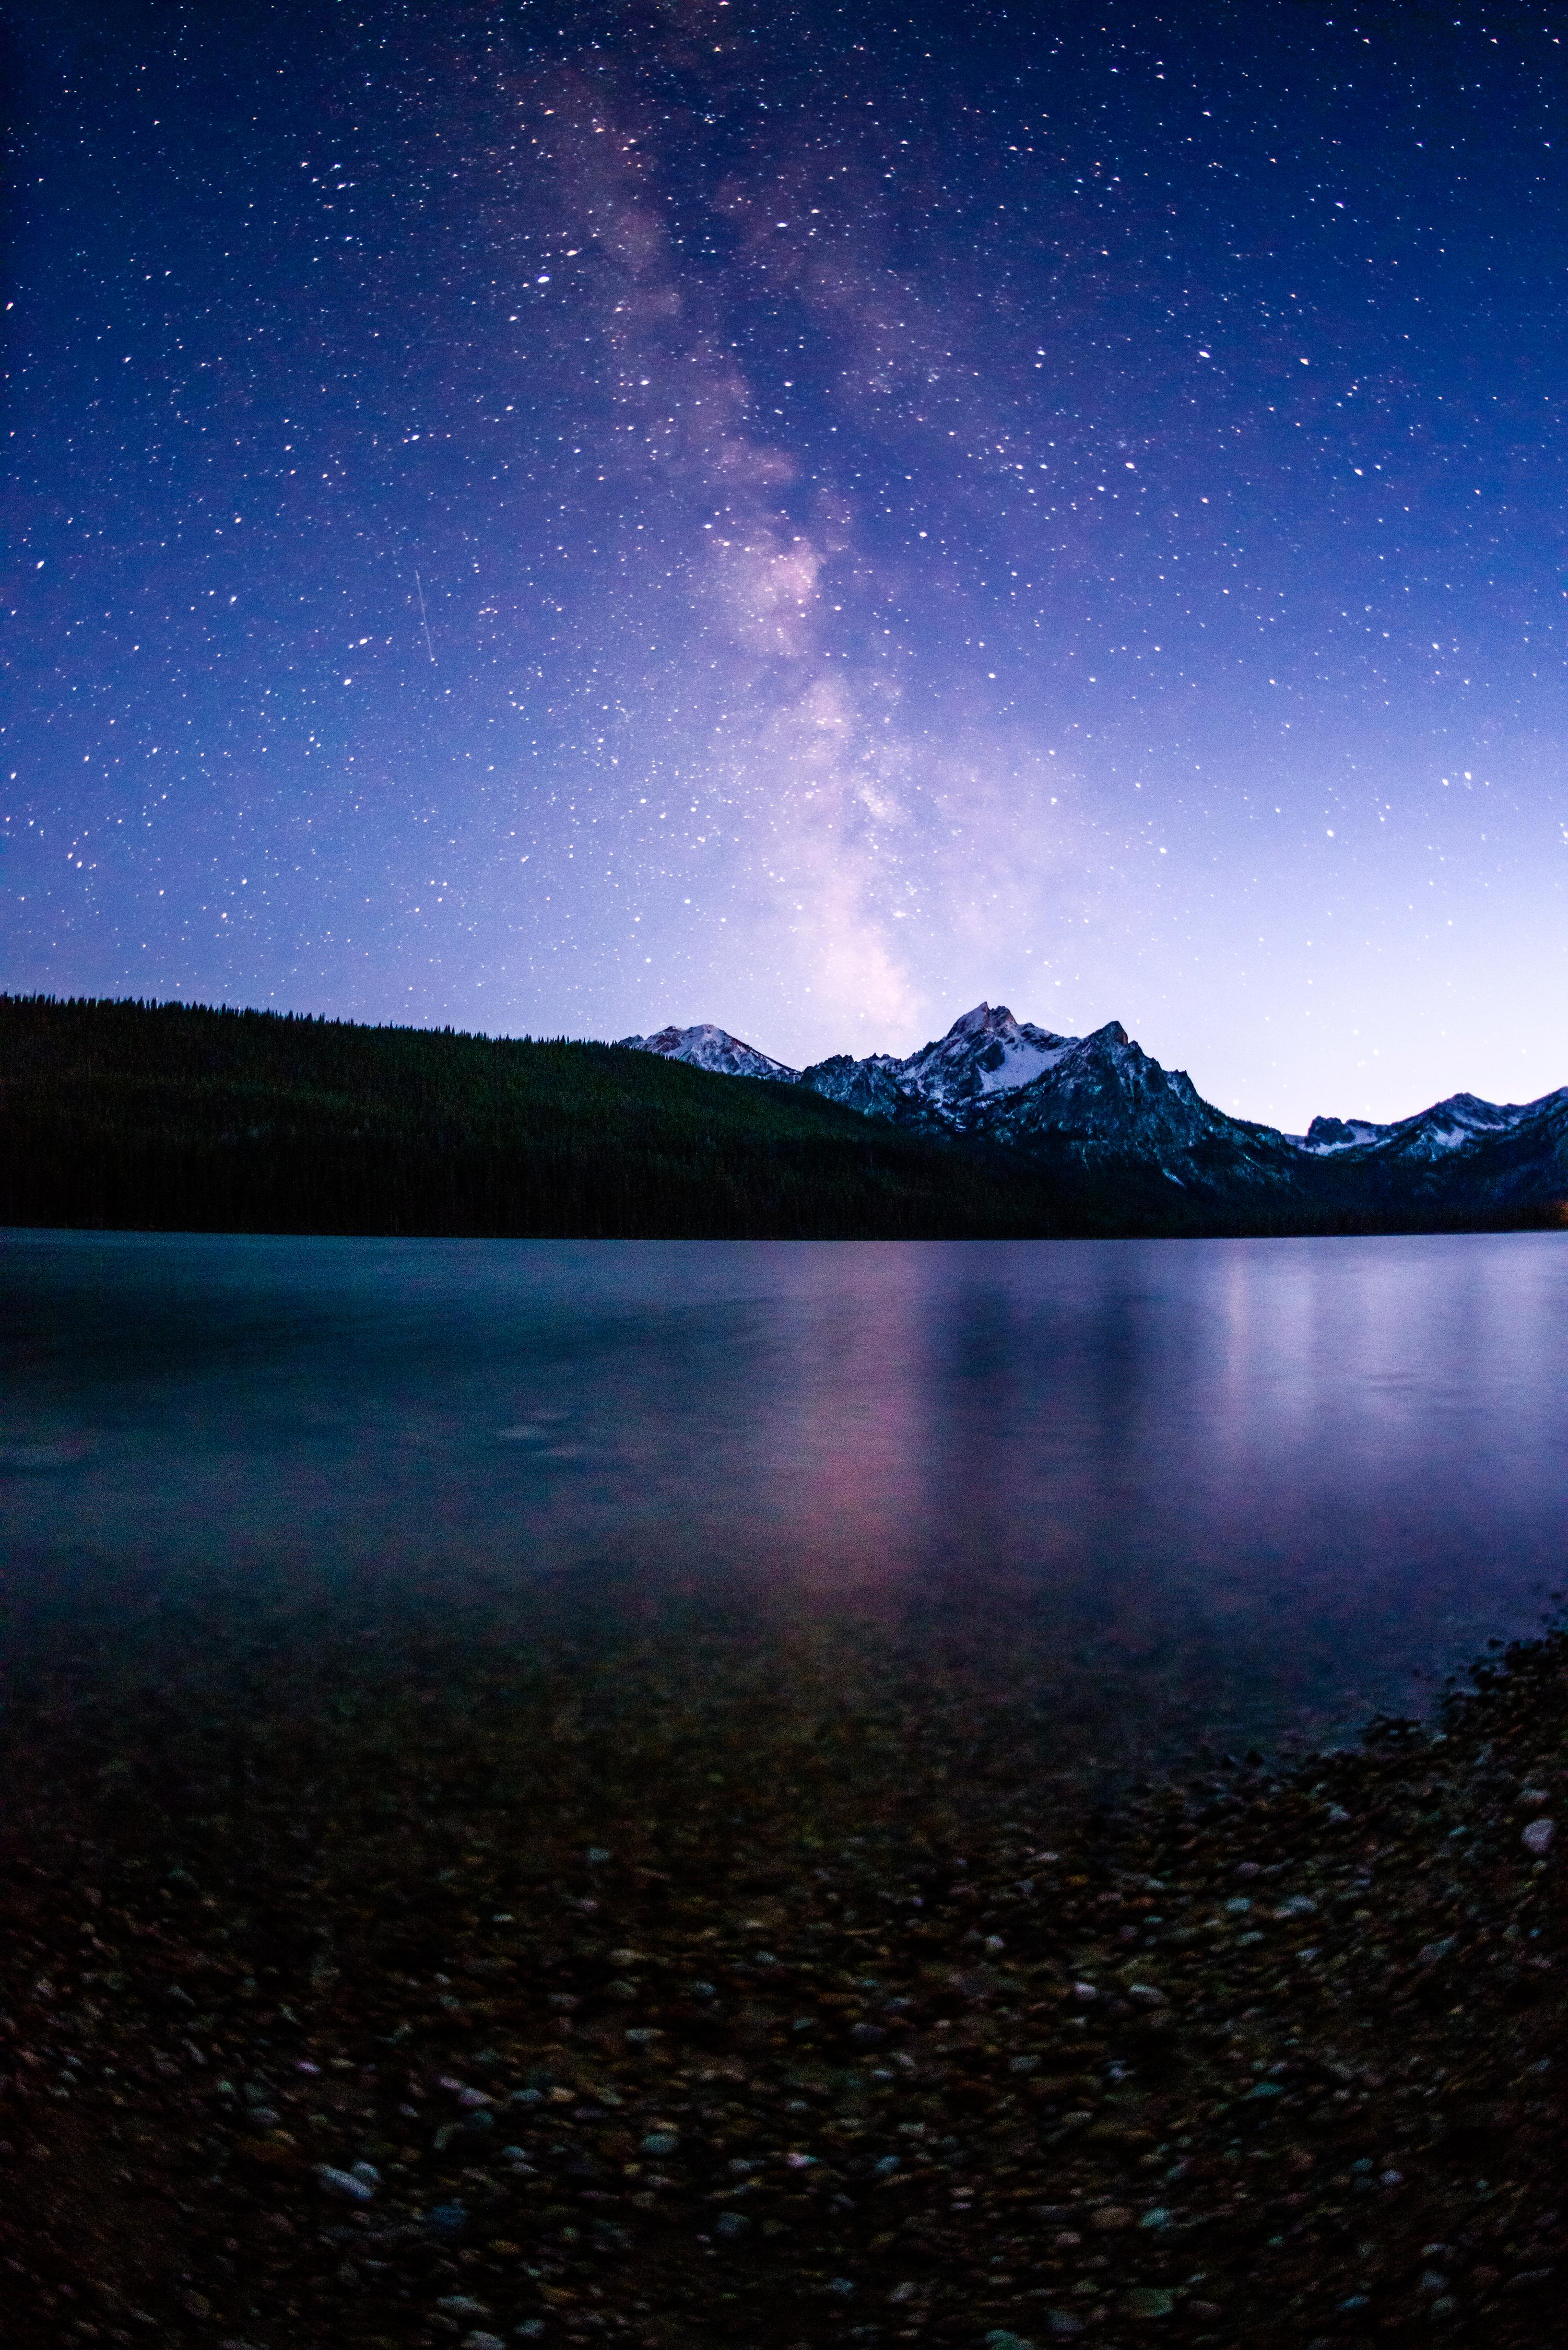 Stanley Lake at night